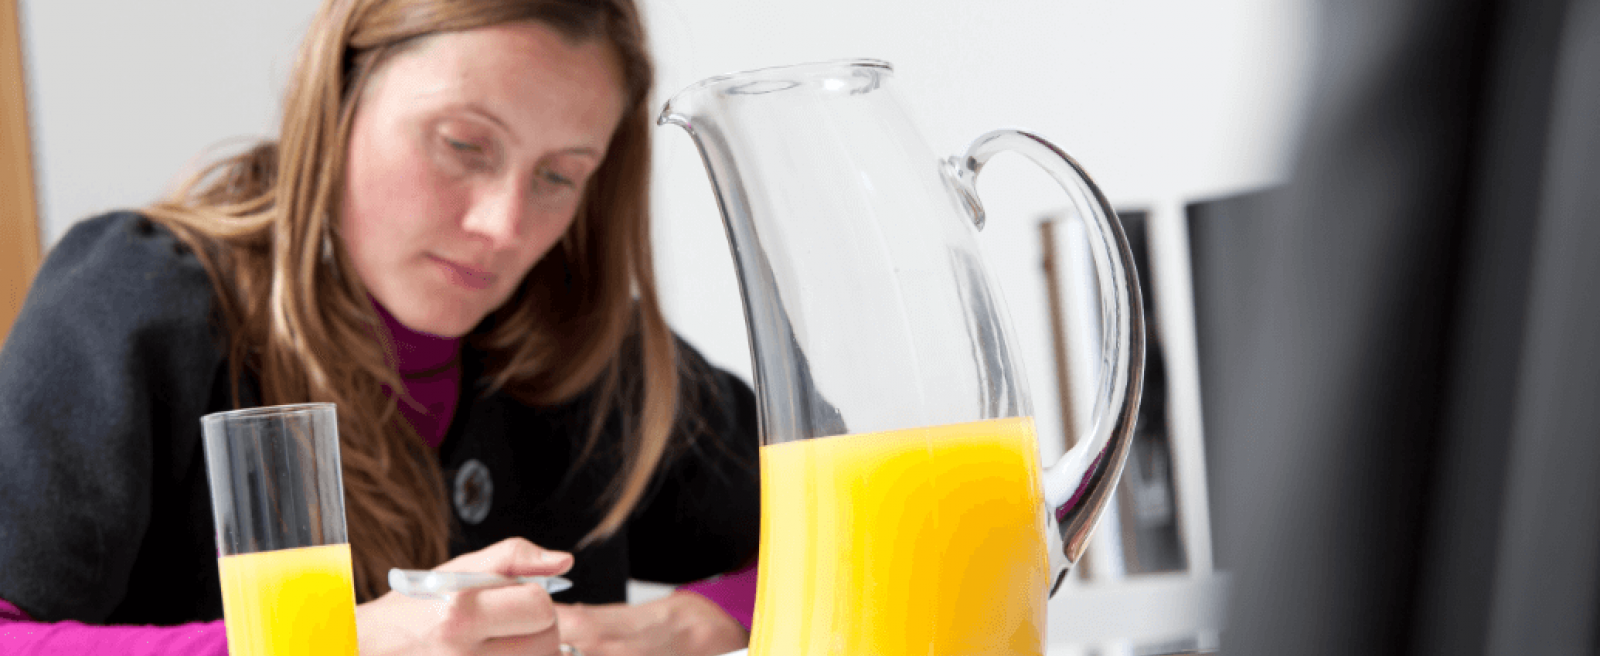 Conference with Orange Juice in Bravura Jug and Glass